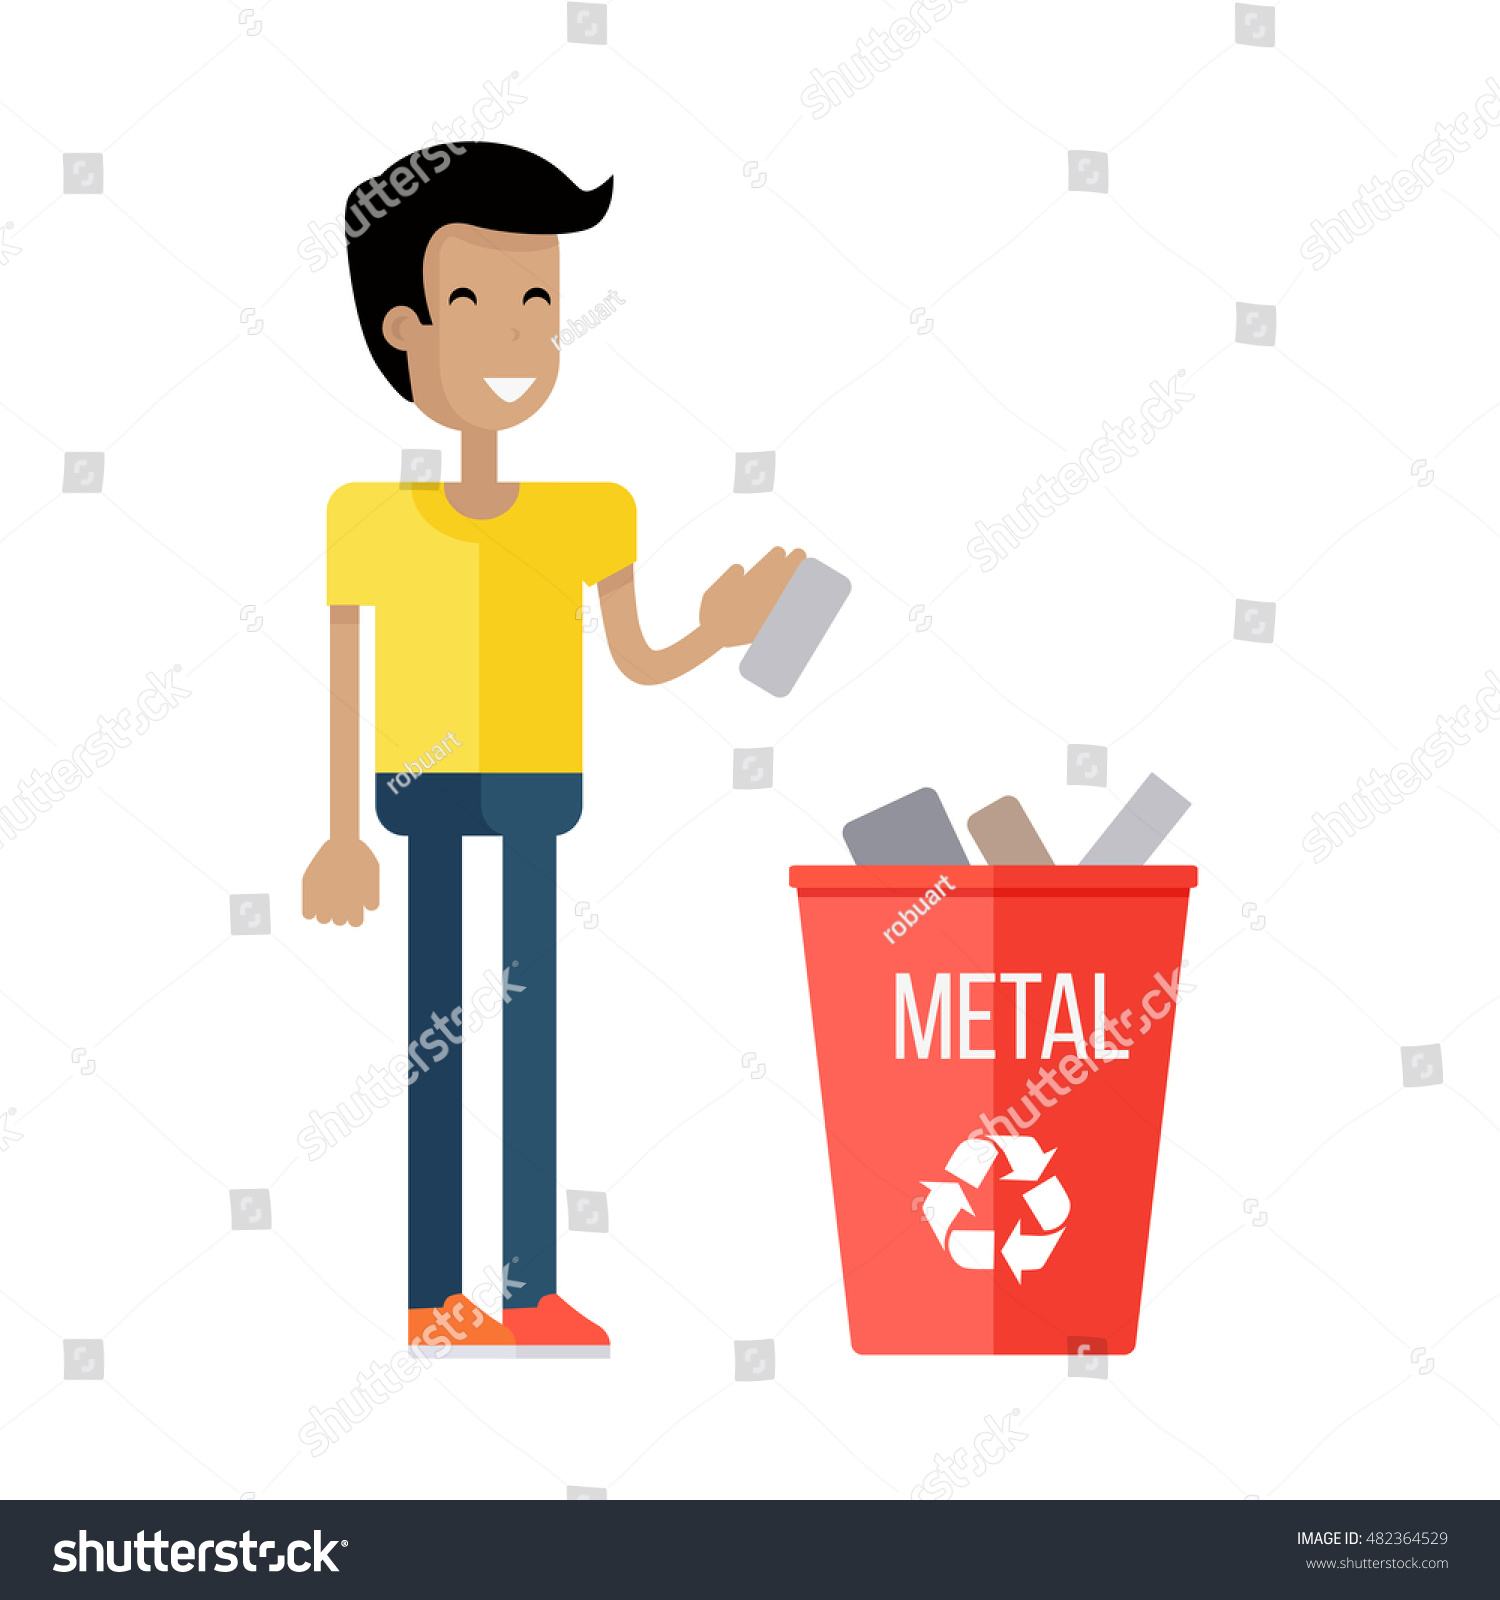 Clipart Trash Can Images, Stock Photos & Vectors   Shutterstock